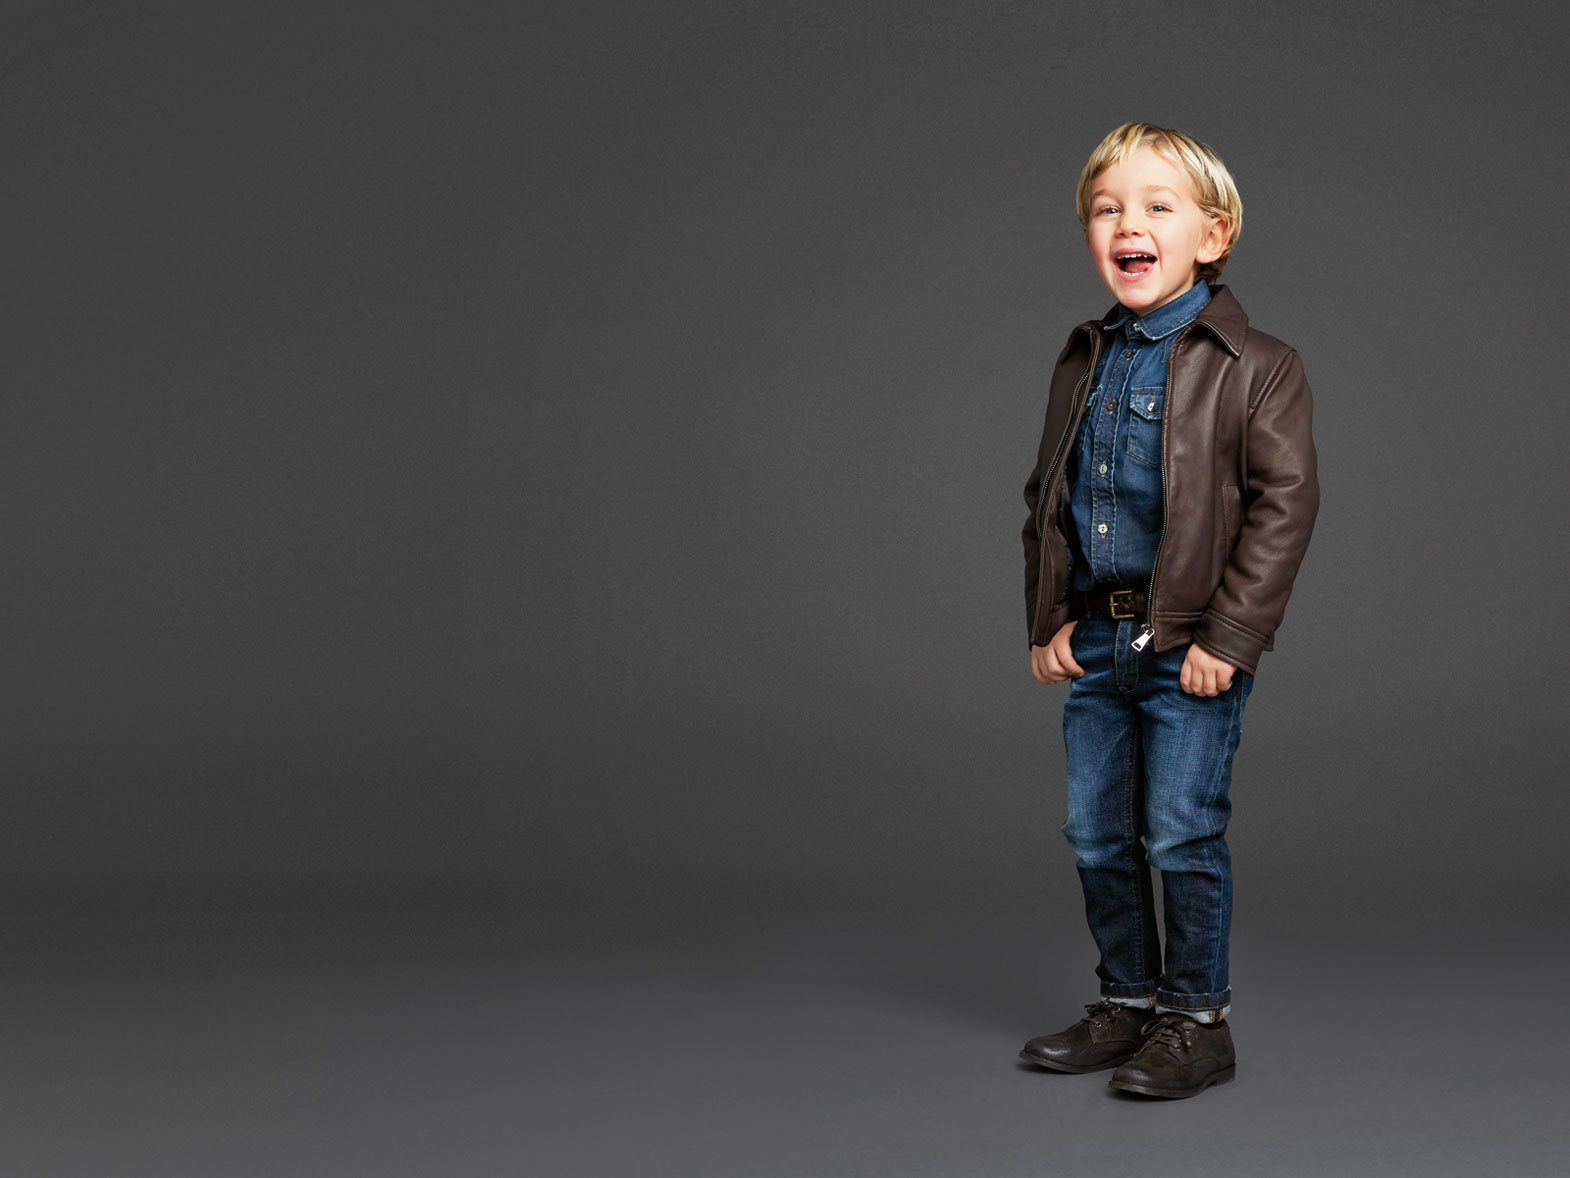 dolce And gabbana Fw 2014 kids collection 42